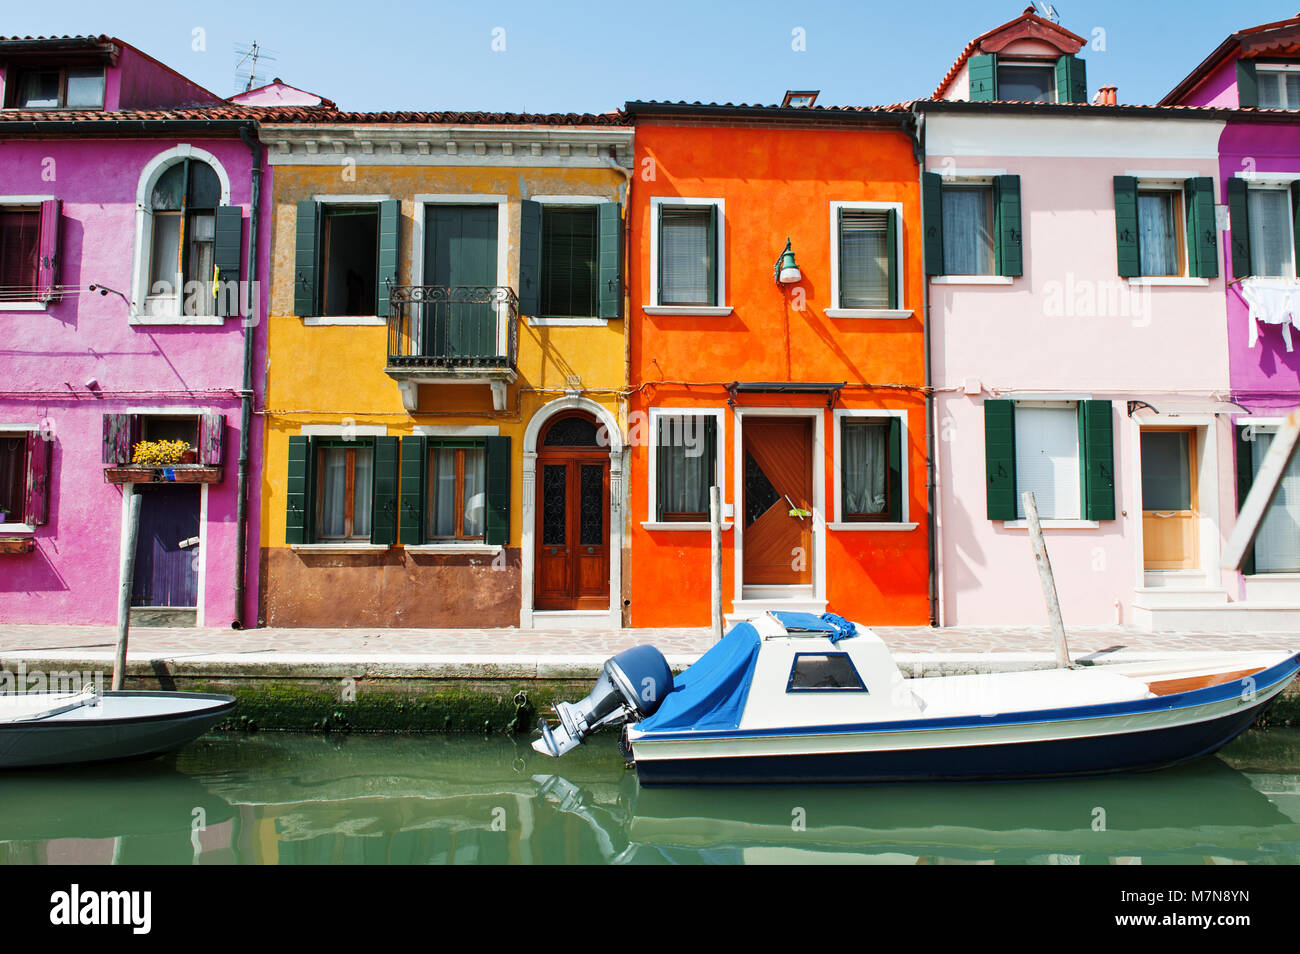 Venice, Burano island, Italy, Europe - scenic view of characteristic colorful buildings and the canal - Stock Image